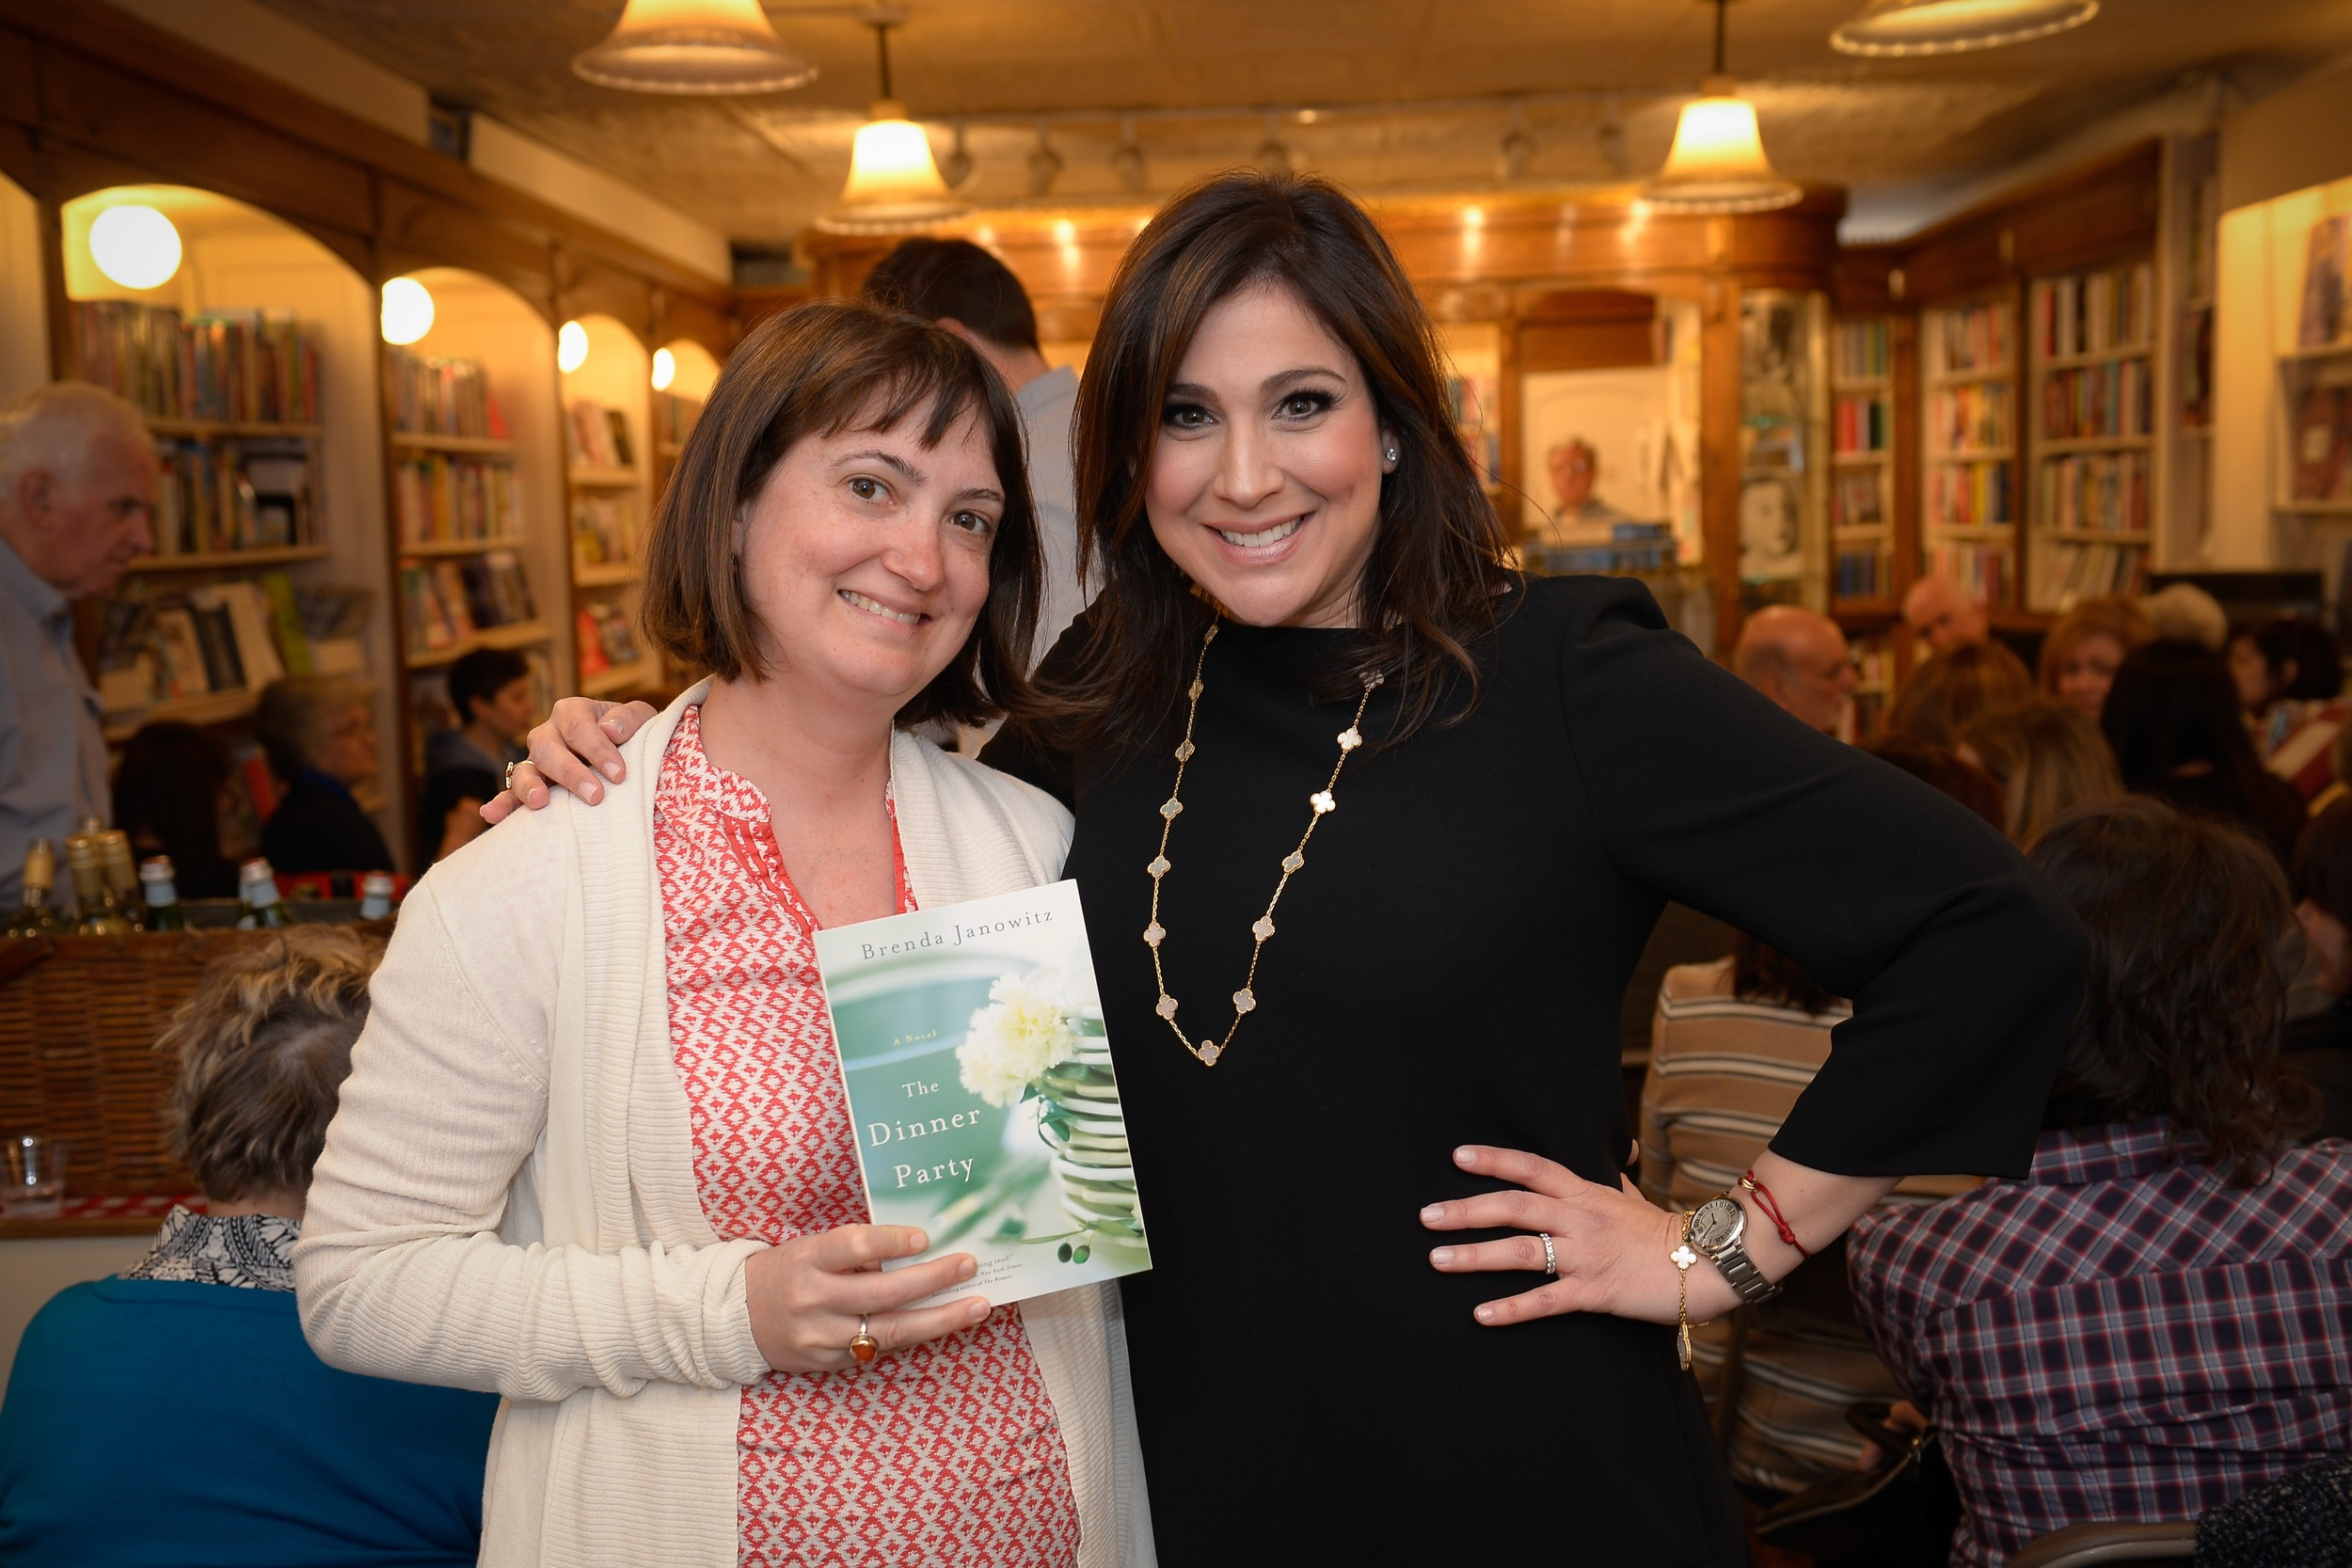 With author Miranda Beverly-Whittemore